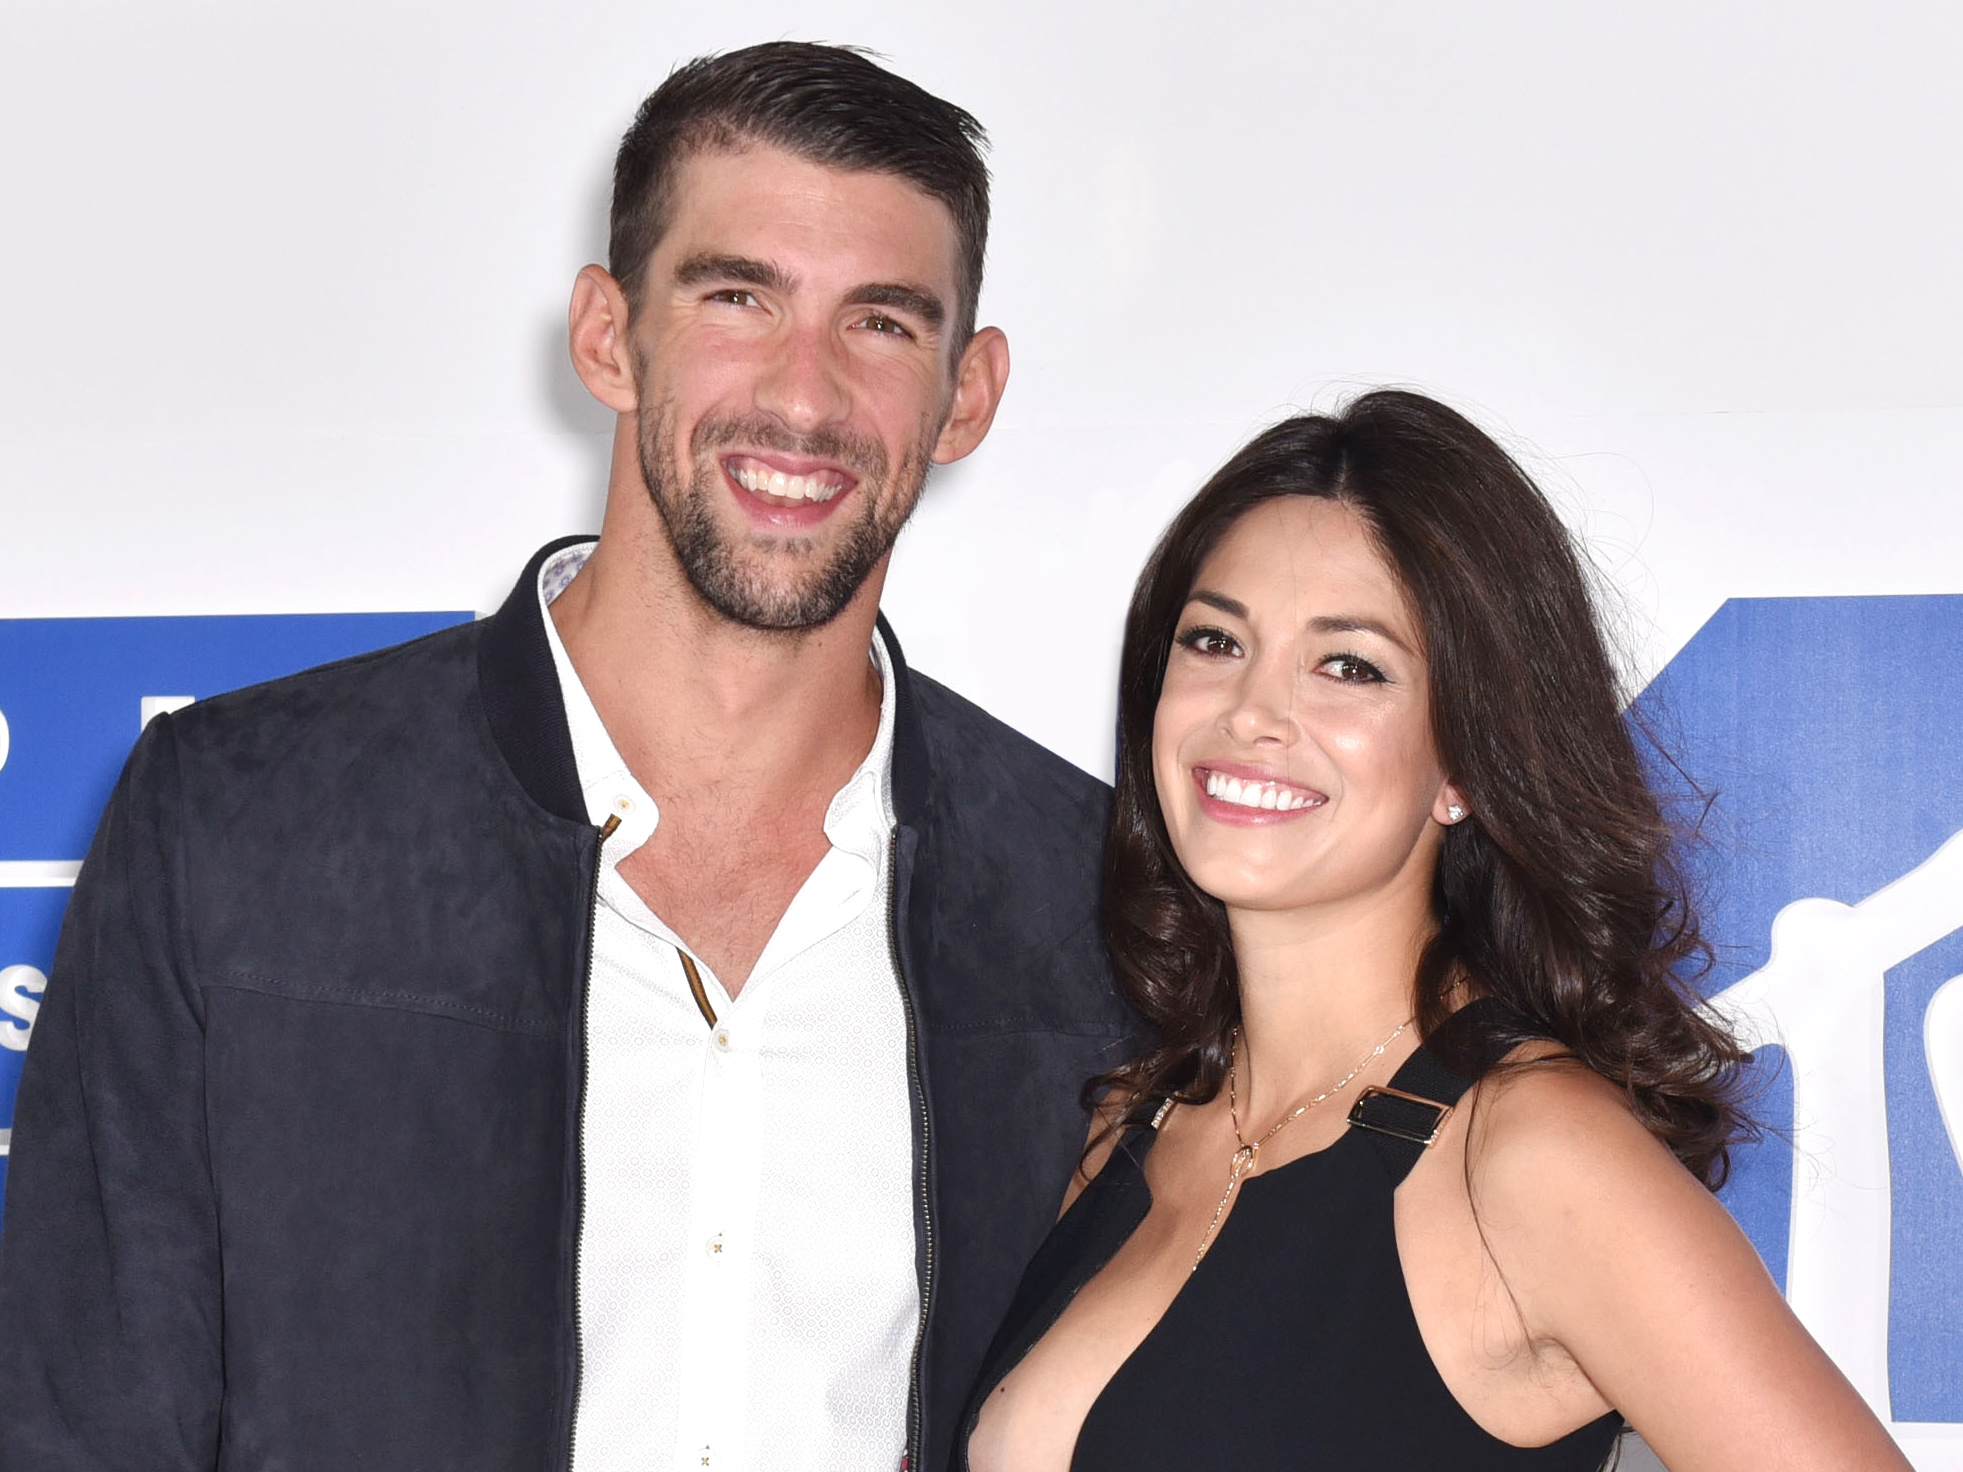 Michael Phelps and Wife Nicole Expecting Second Child